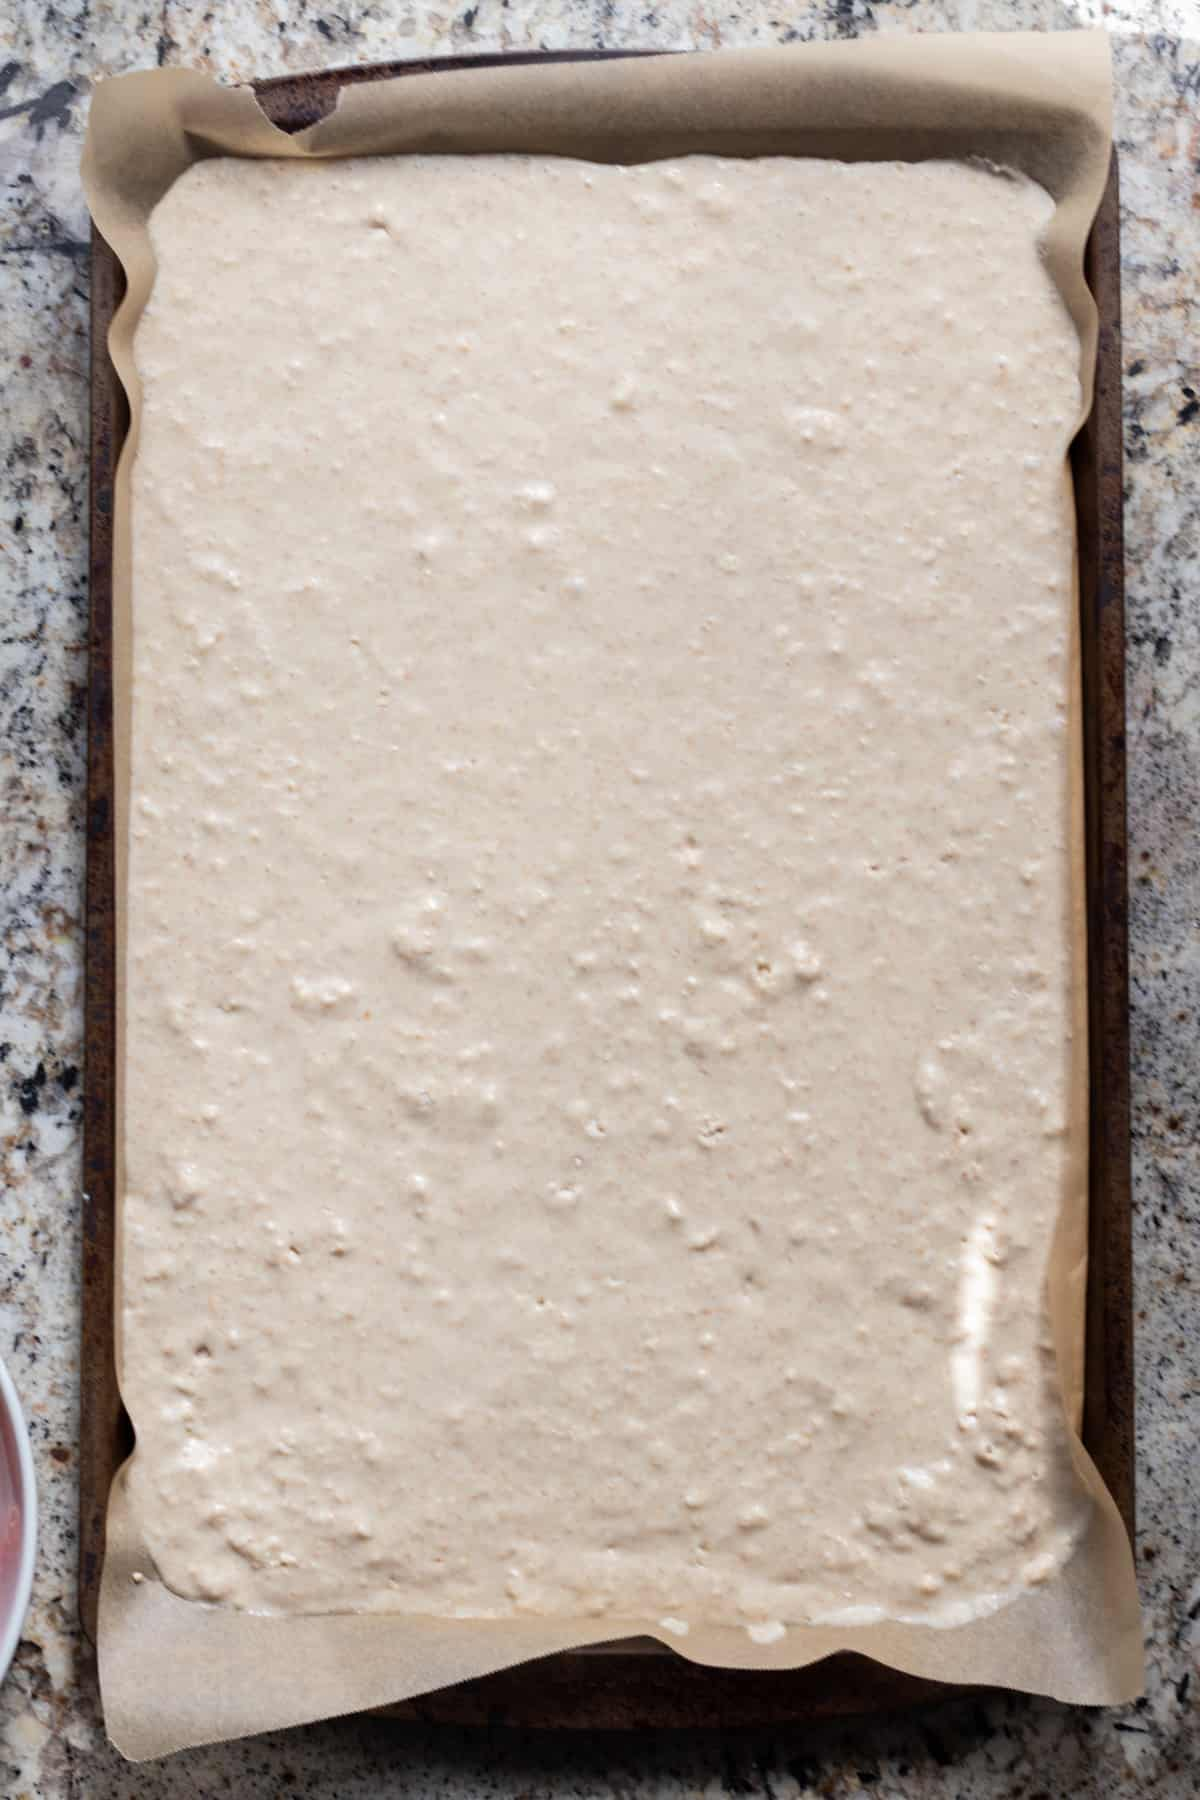 Pancake batter in parchment lined baking sheet.